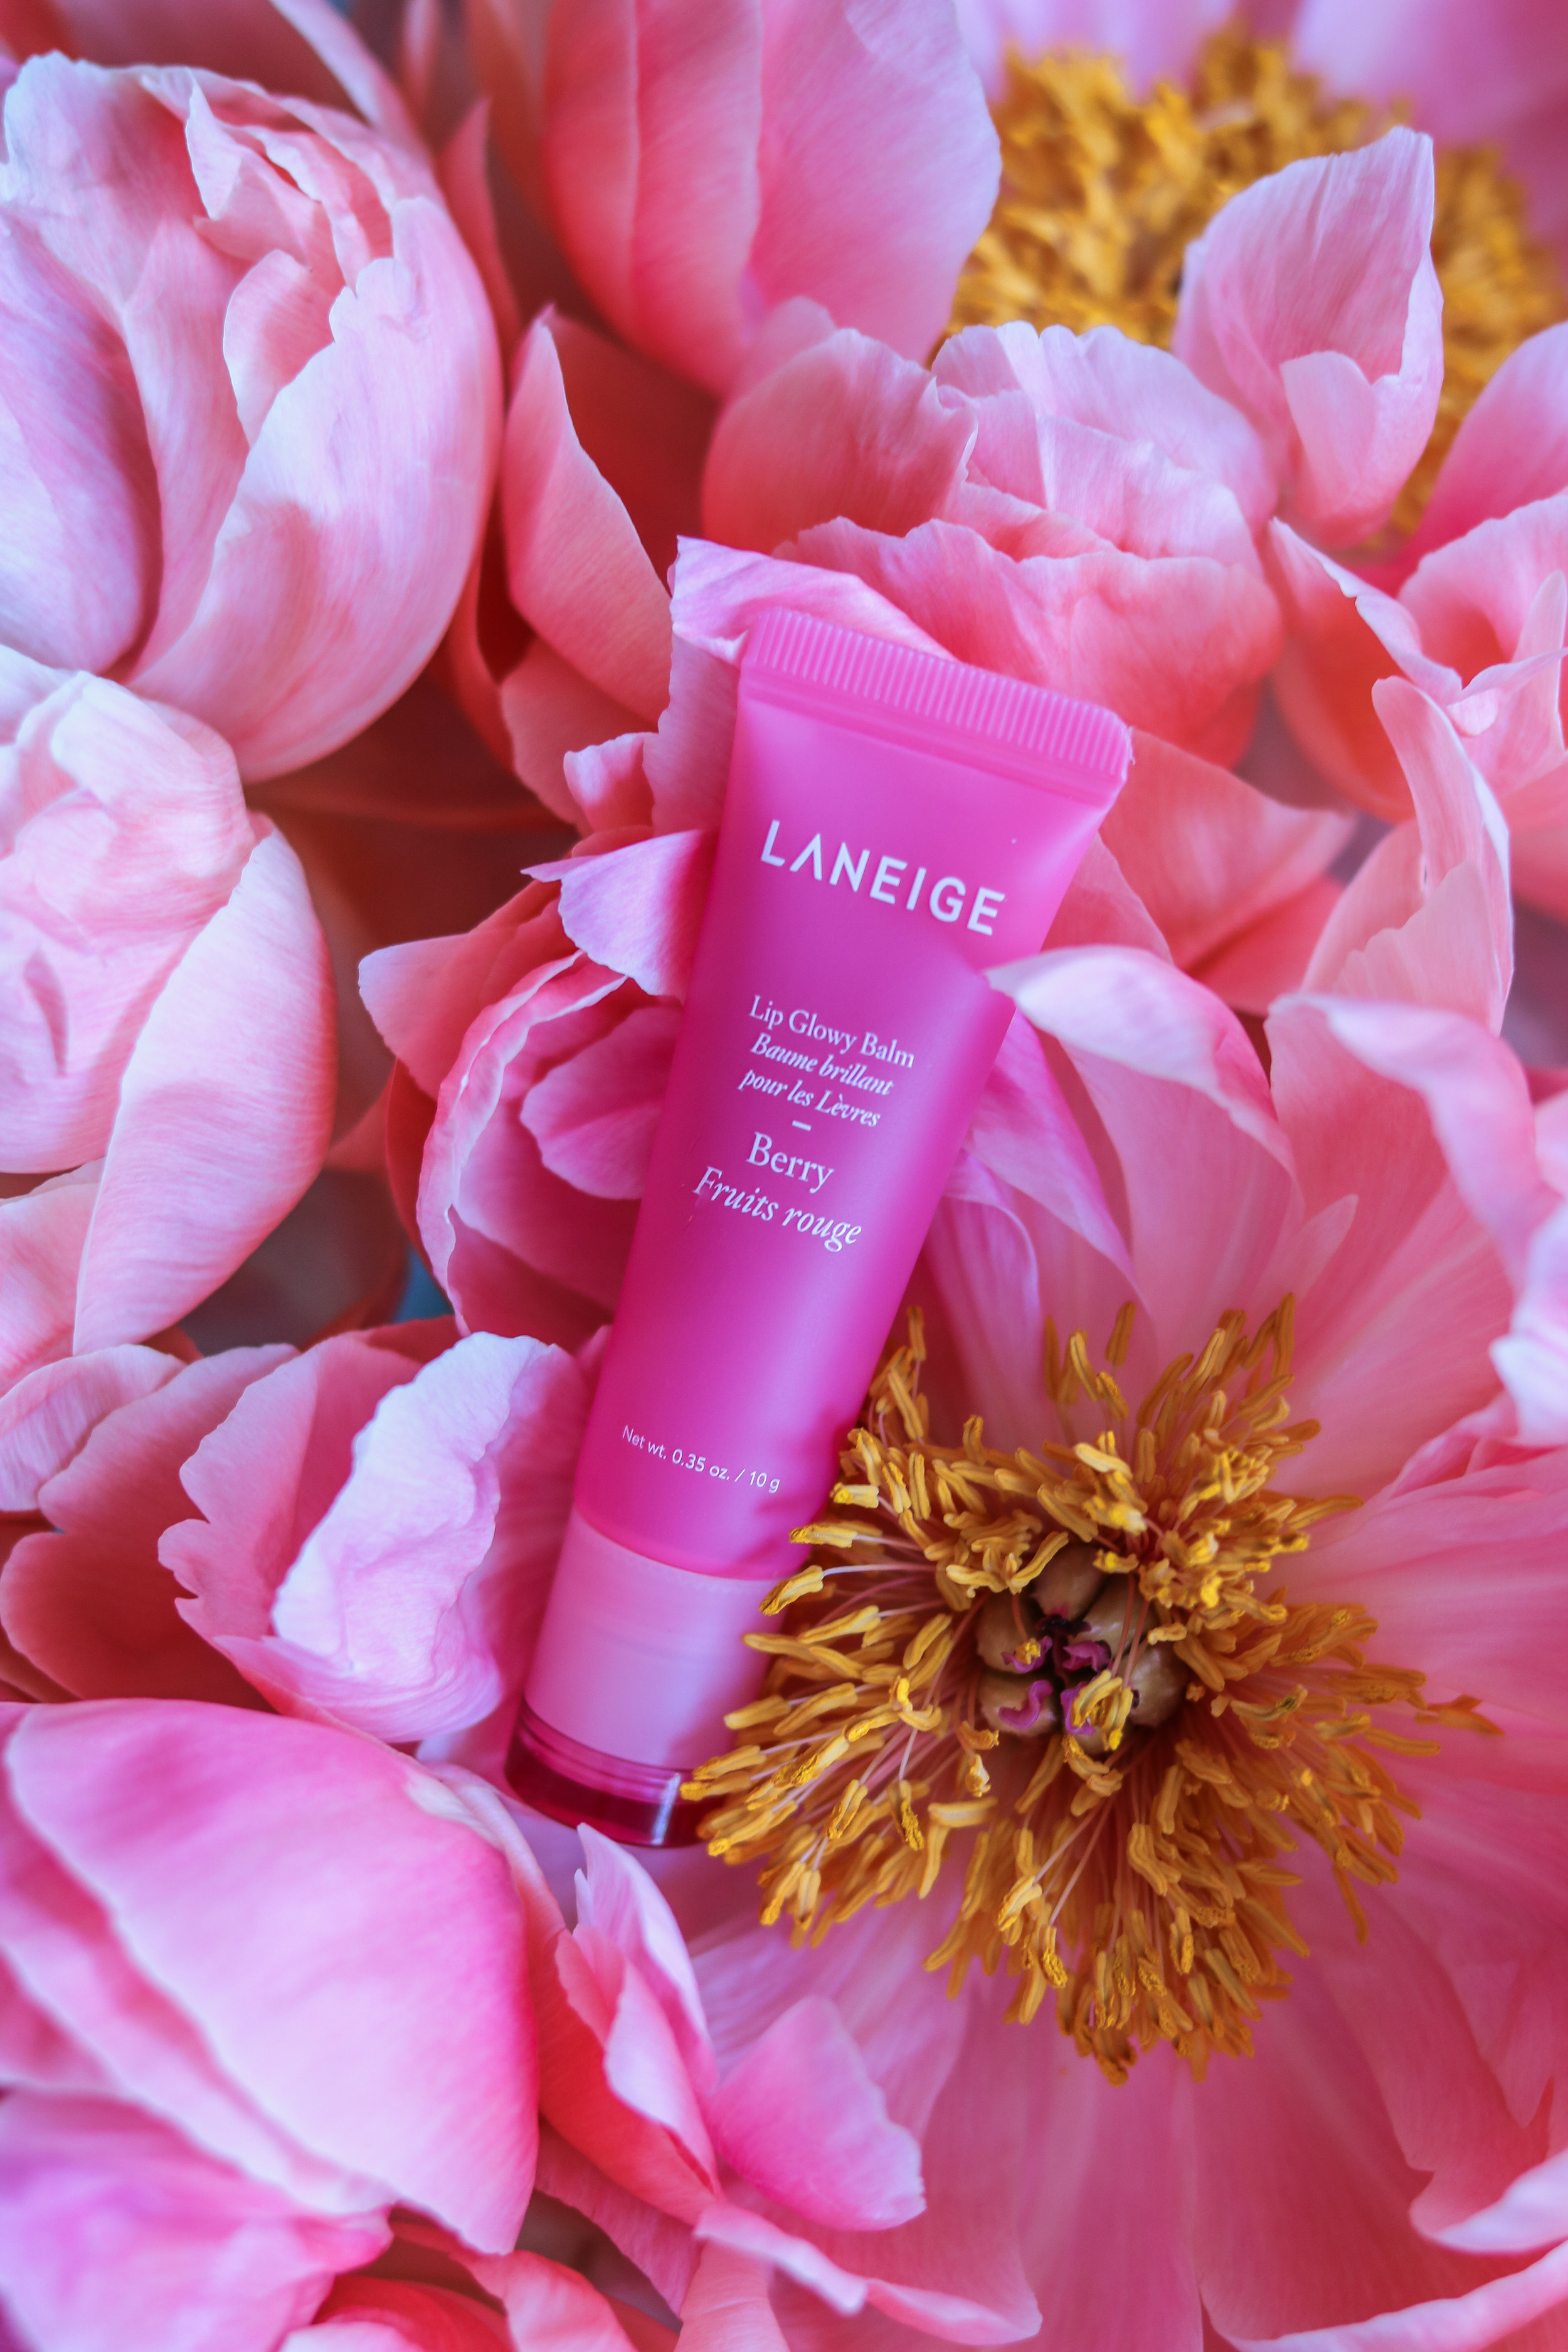 The Hungarian Brunette - Laneige lip glowy lip balm Review Berry